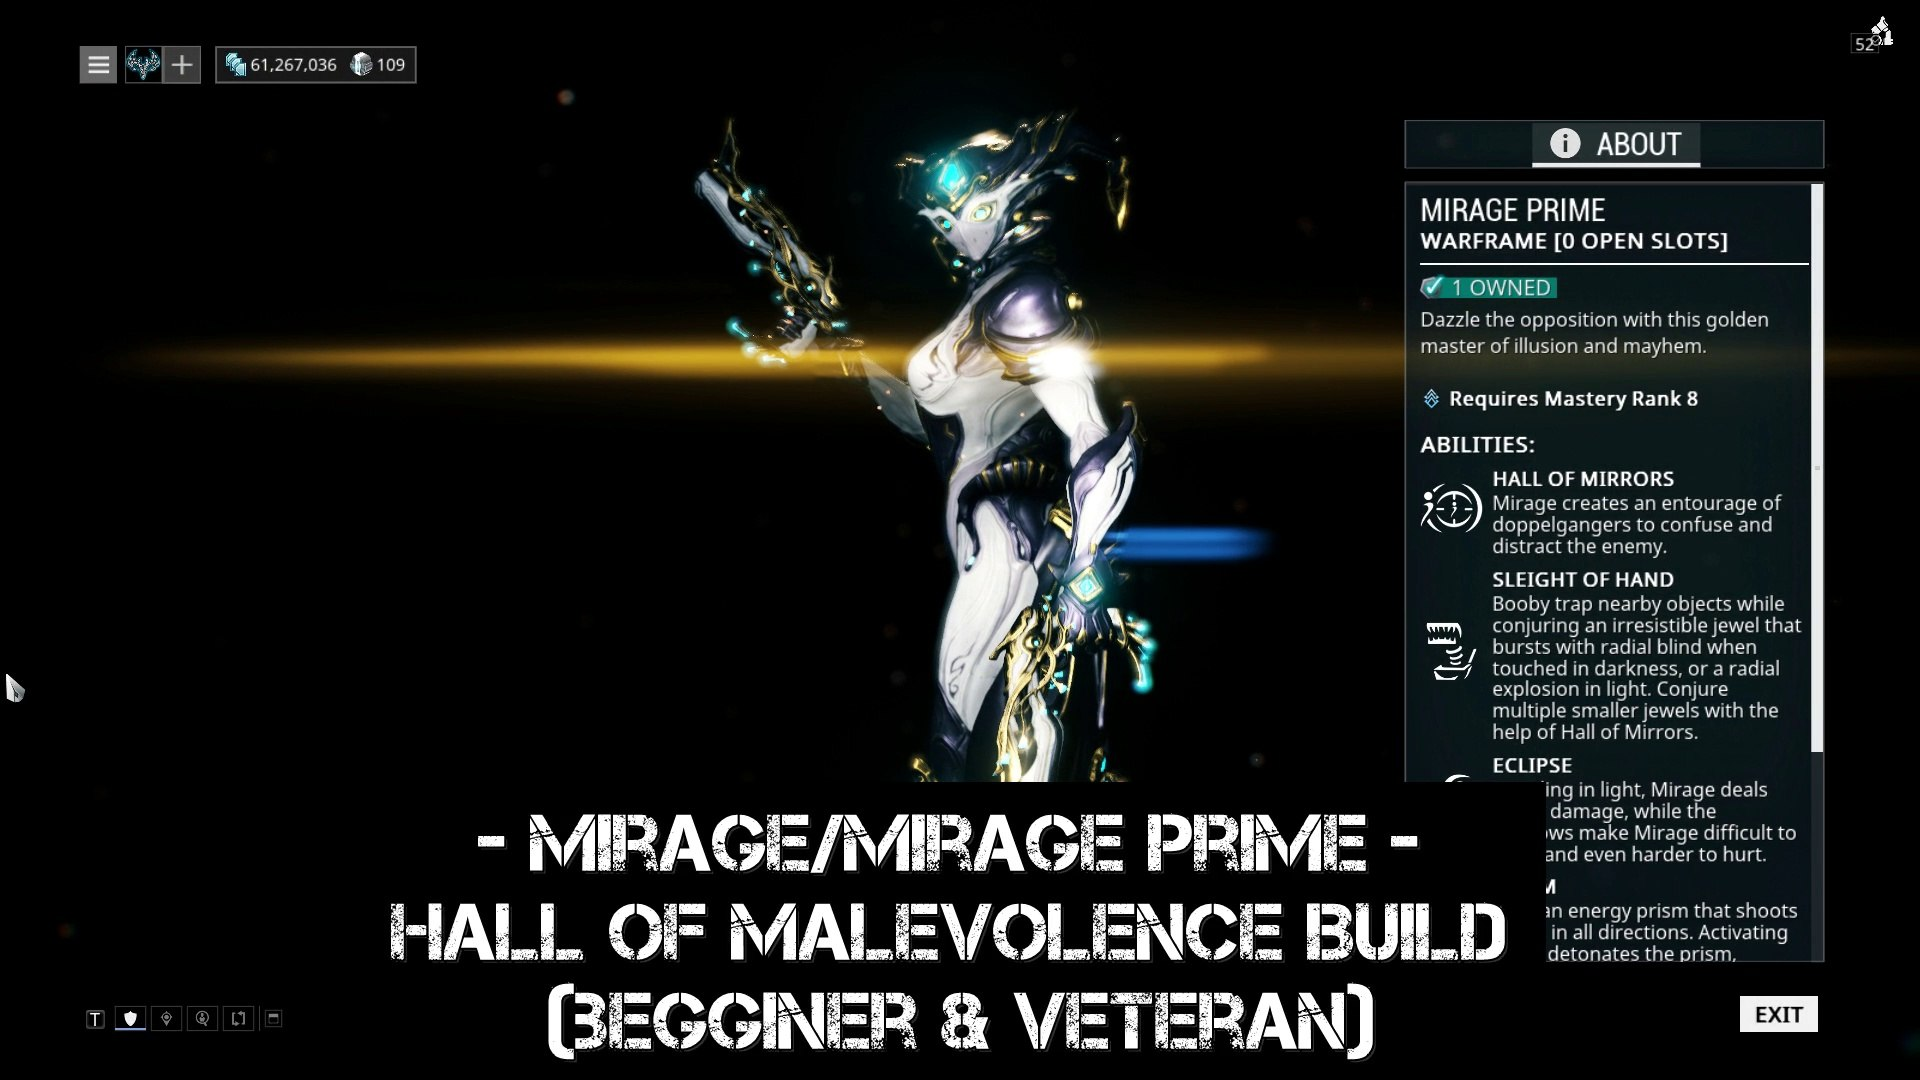 Warframe Mirage/Mirage Prime - Hall of Malevolence Build (begginer &  veteran)